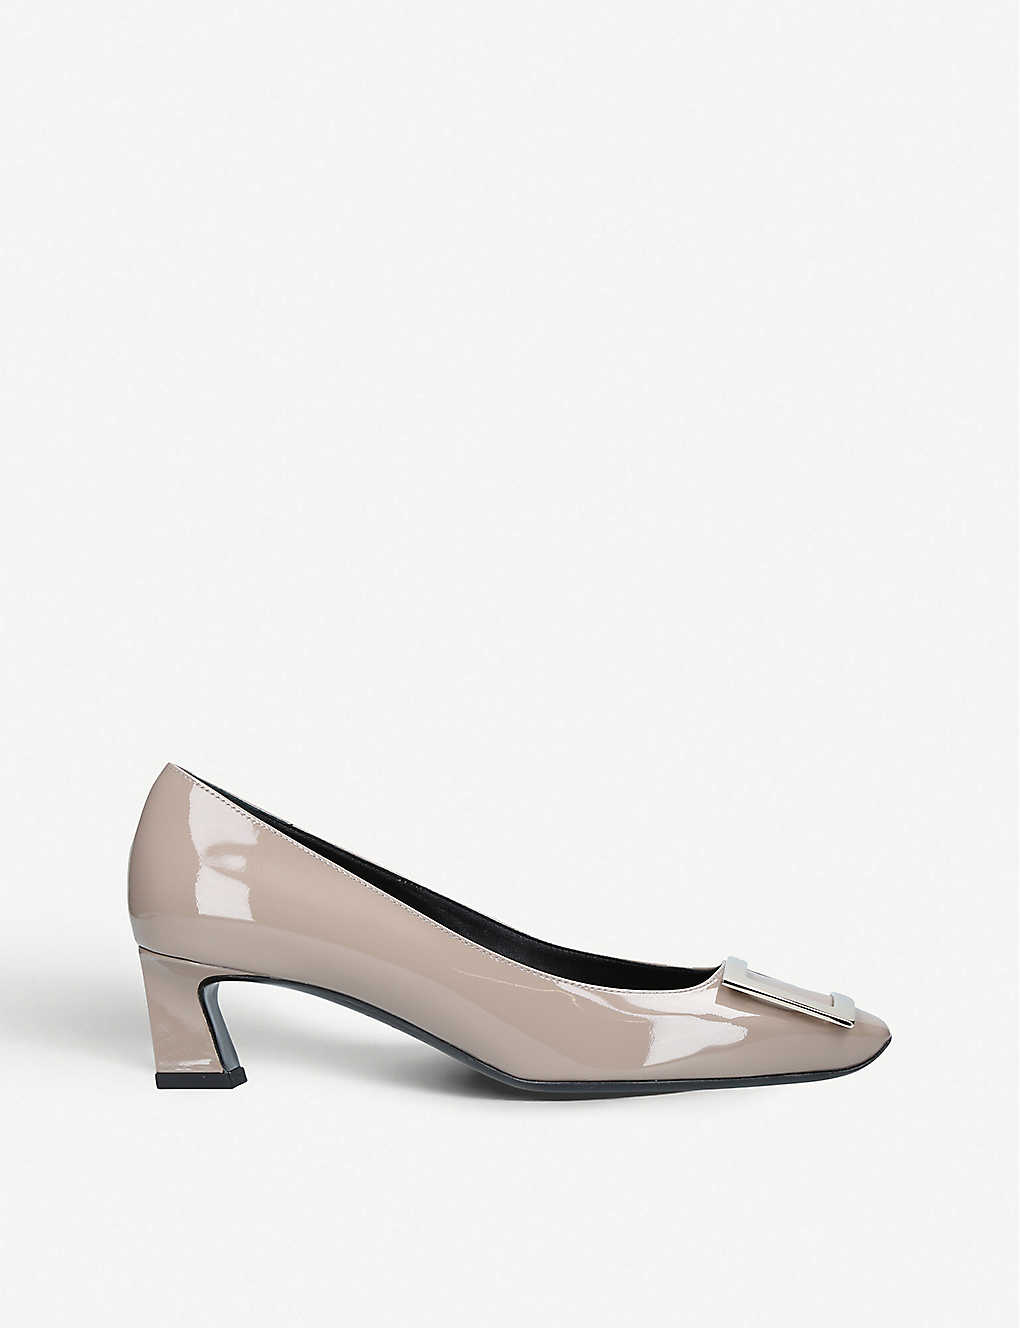 Trompette patent leather courts(5454214)